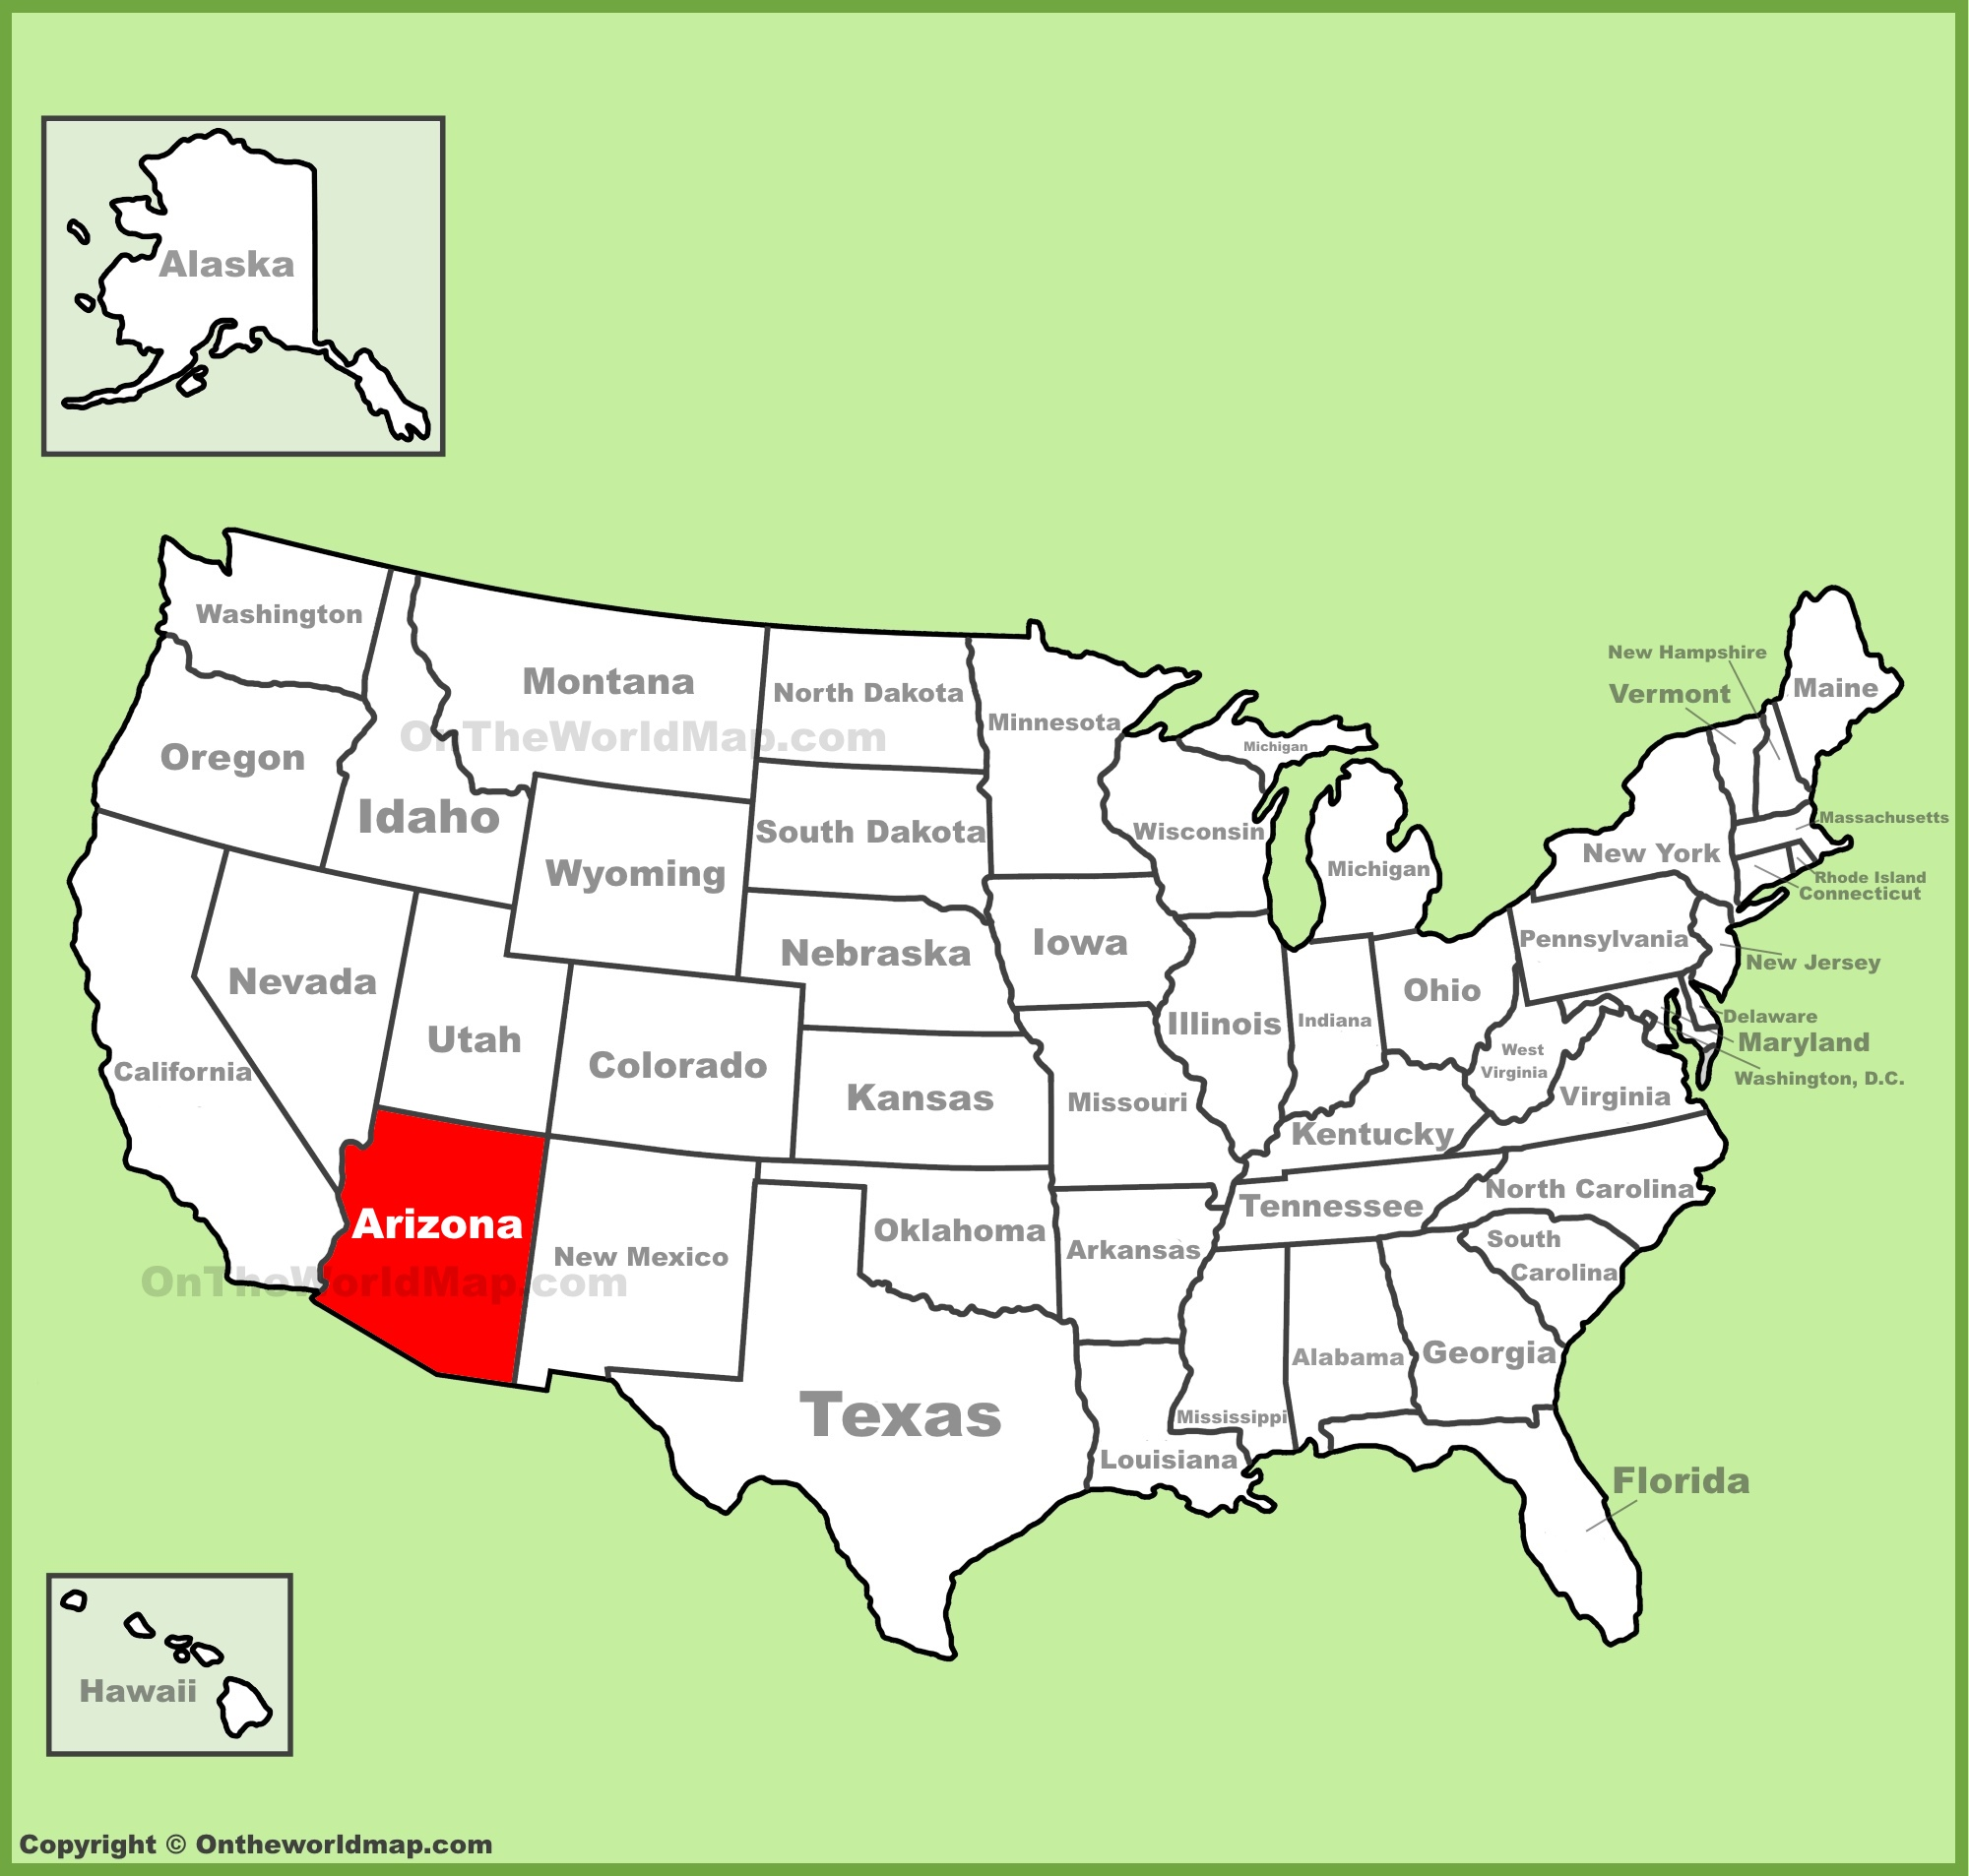 Arizona On Map Arizona location on the U.S. Map